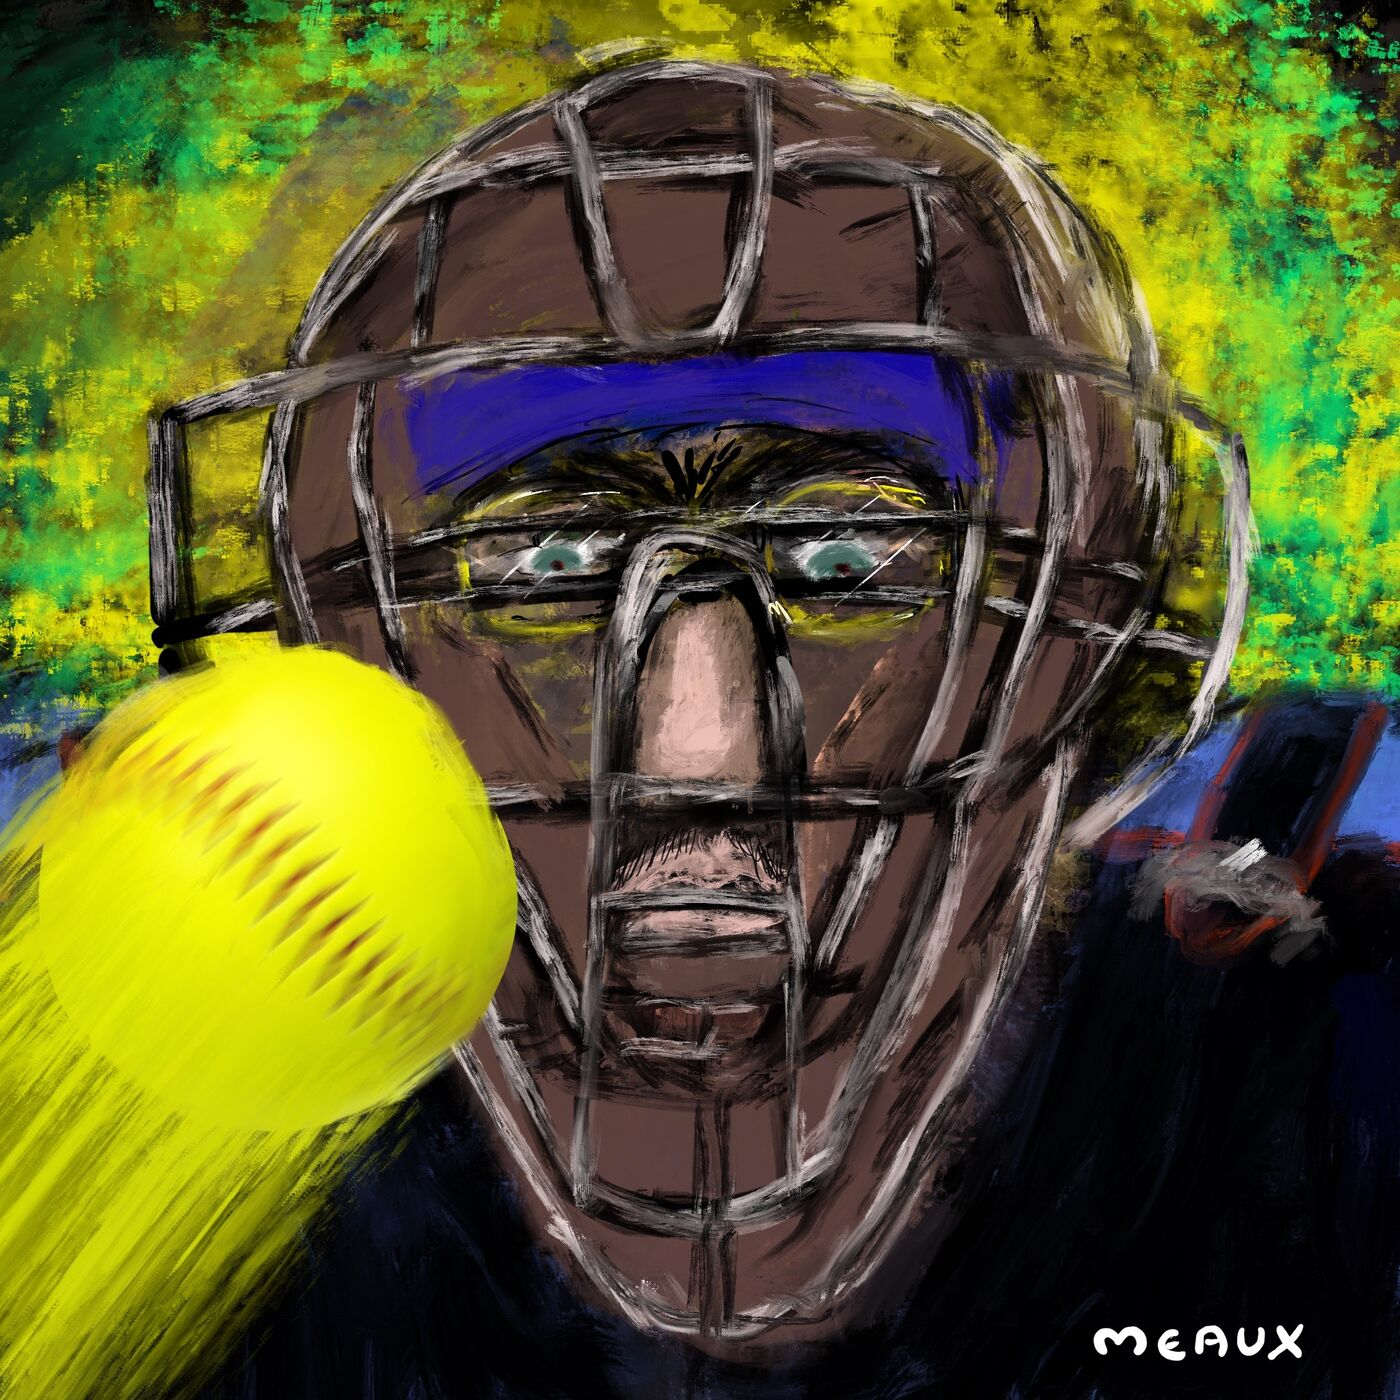 The Man in the Iron Mask - The Memories of a Girl's Softball League Umpire